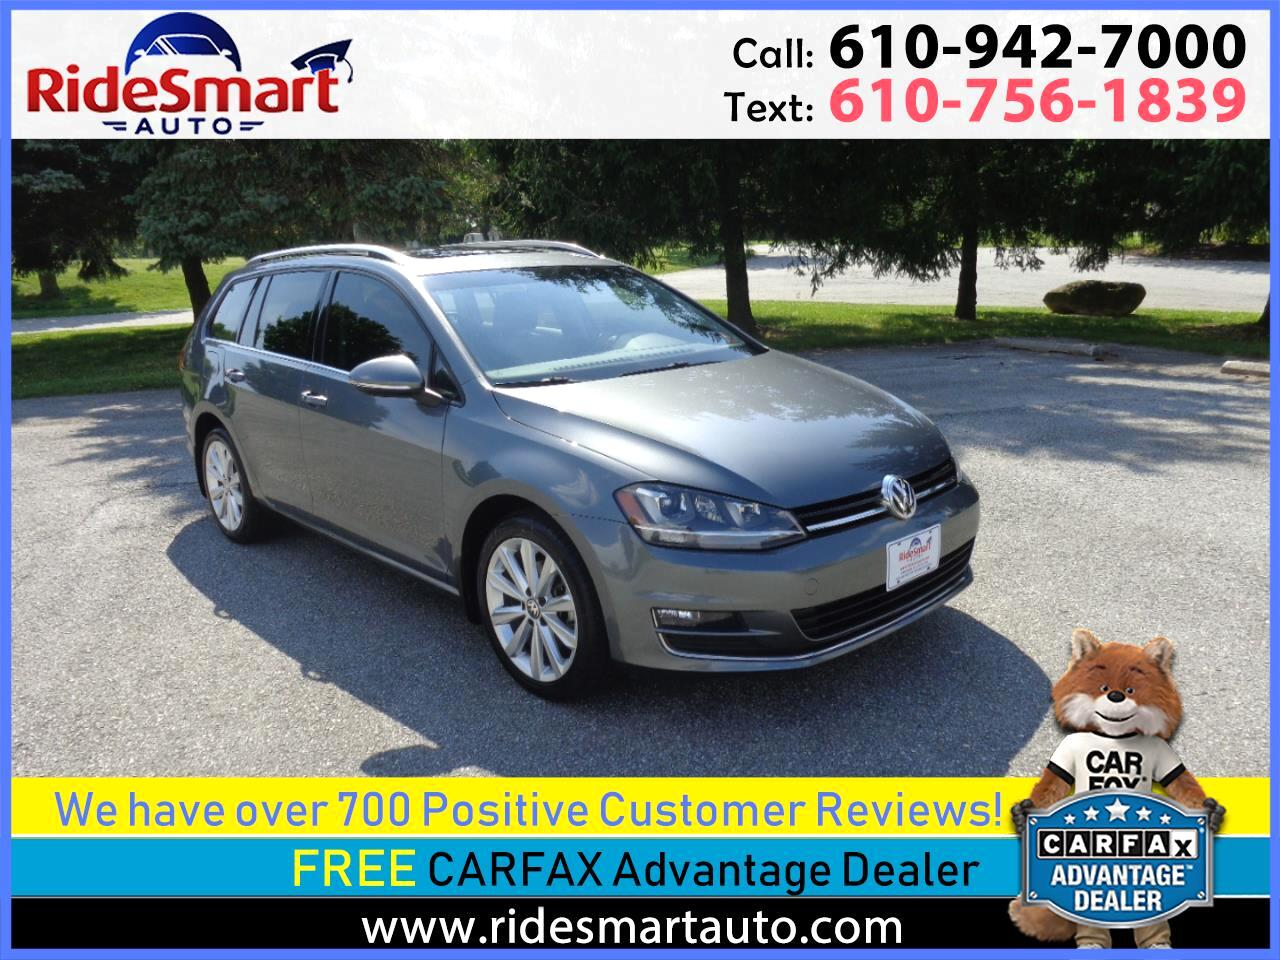 2015 Volkswagen Golf SportWagen TDI SEL 6 Speed Manual Leather-Nav-Sunroof